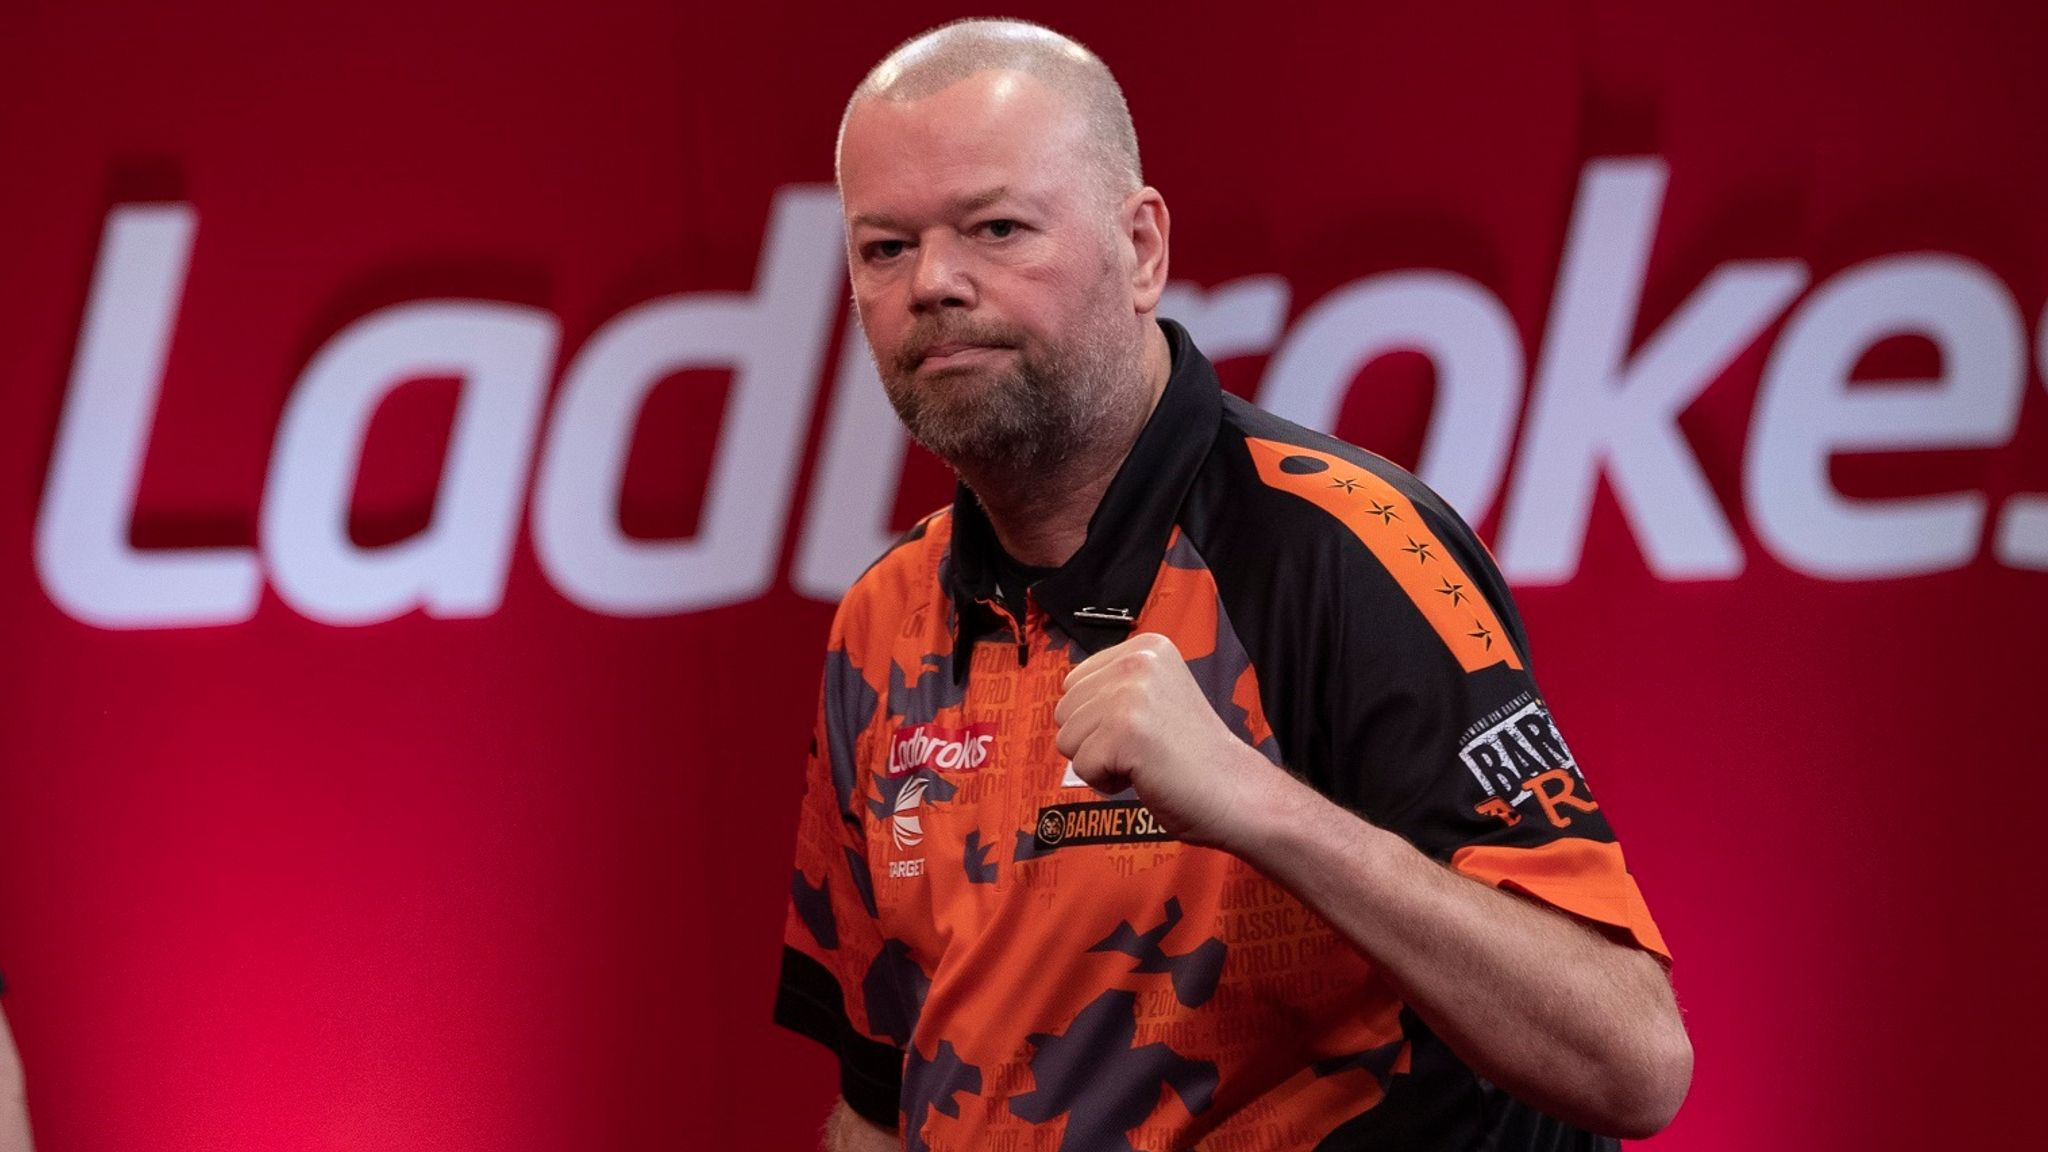 Van Barneveld wins tour card on Day Four of Final Stage